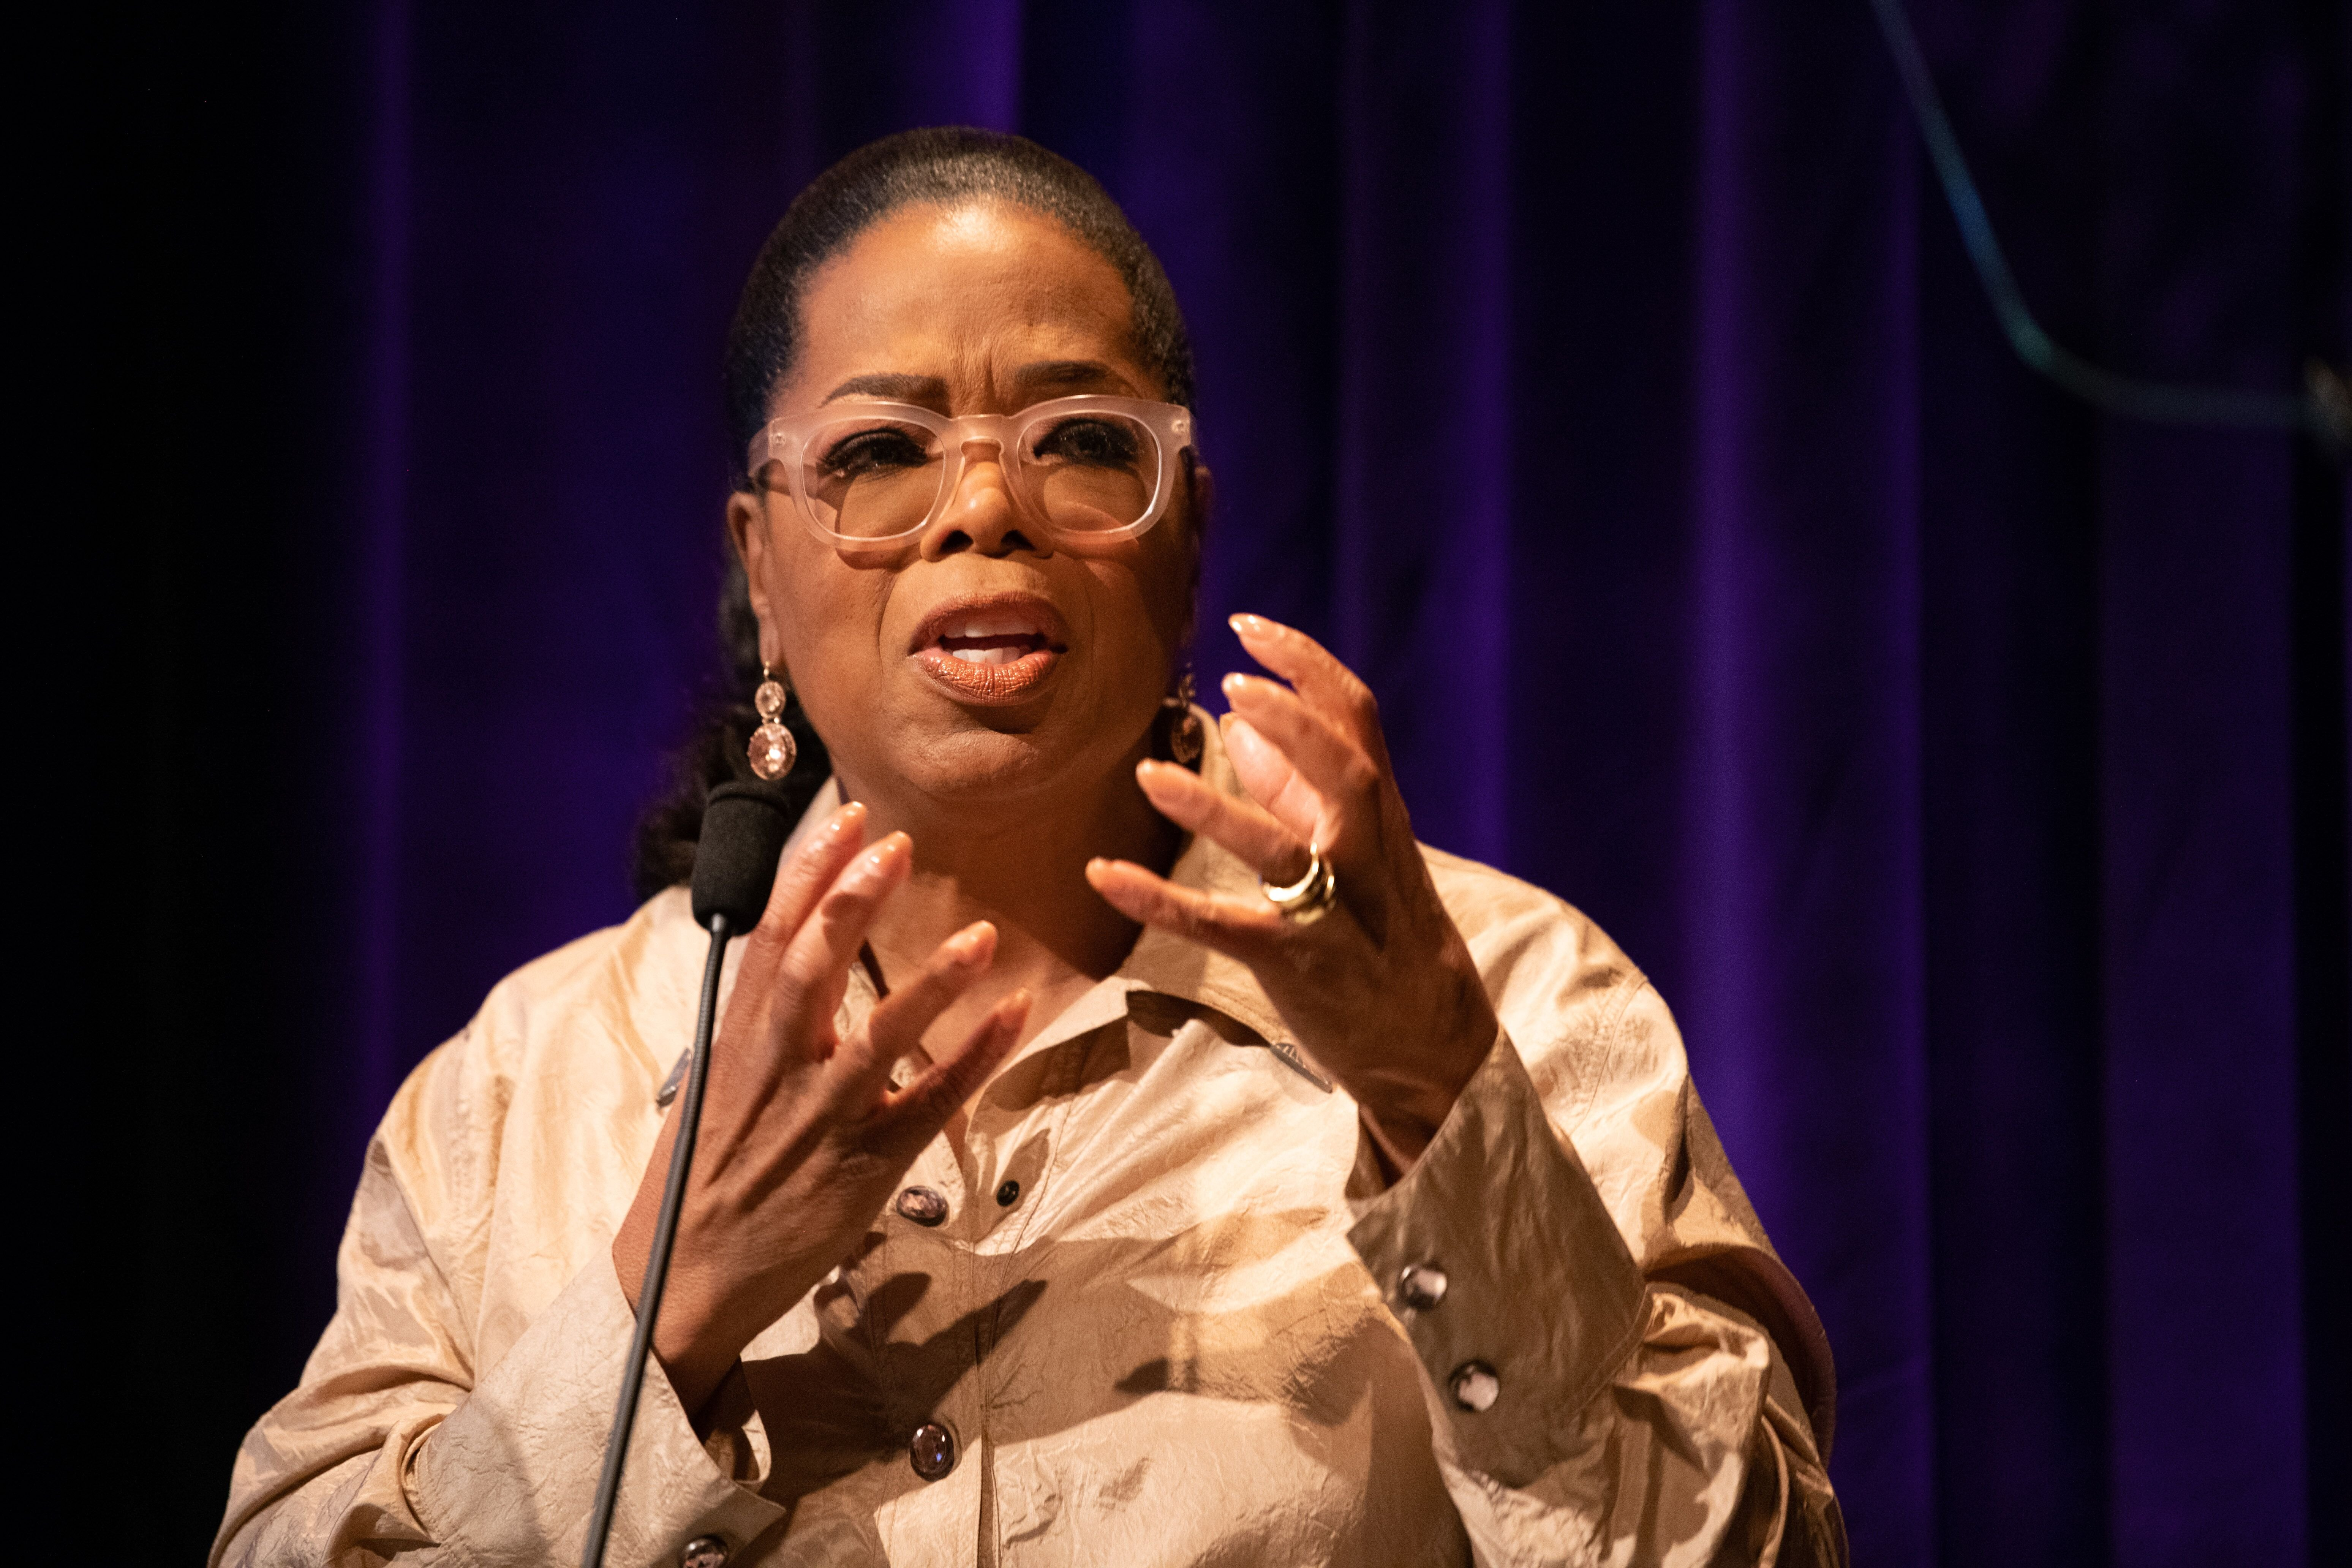 Oprah Winfrey speaks onstage at the Women's E3 Summit. | Source: Getty Images